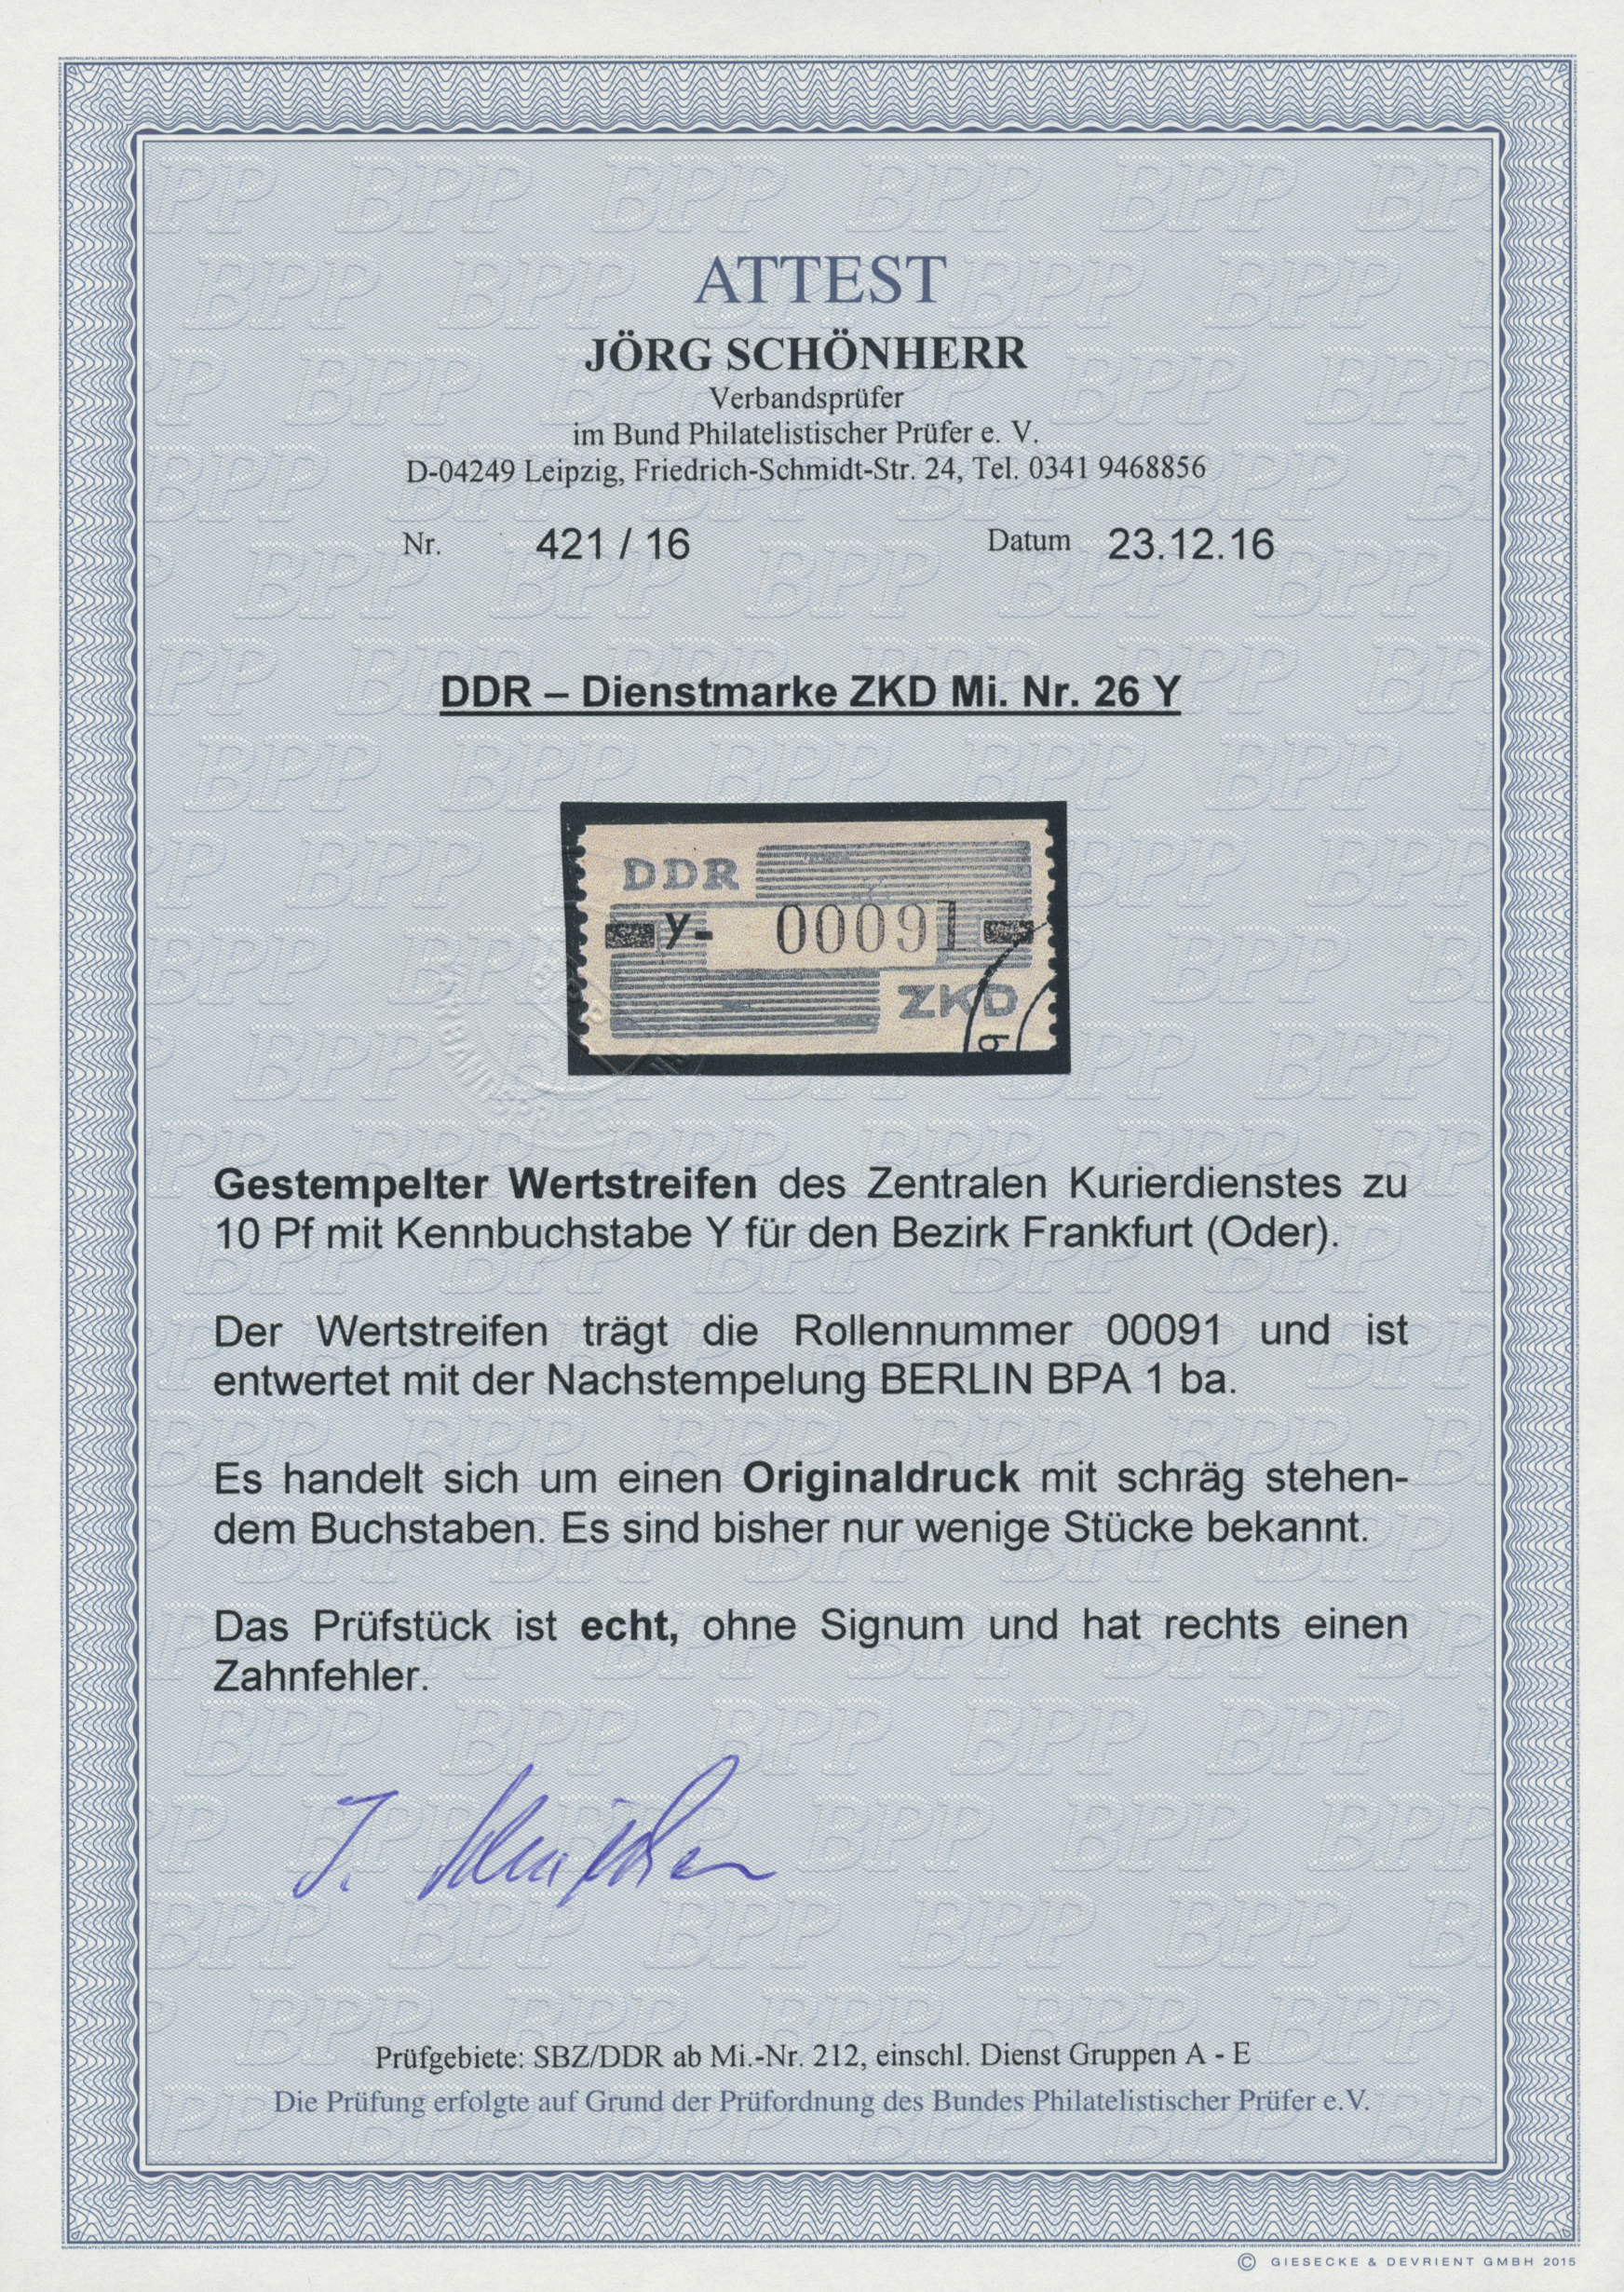 Lot 20407 - DDR - Dienstmarken C (Laufkontrollzettel ZKD)  -  Auktionshaus Christoph Gärtner GmbH & Co. KG Auction #40 Germany, Picture Post Cards, Collections Overseas, Thematics